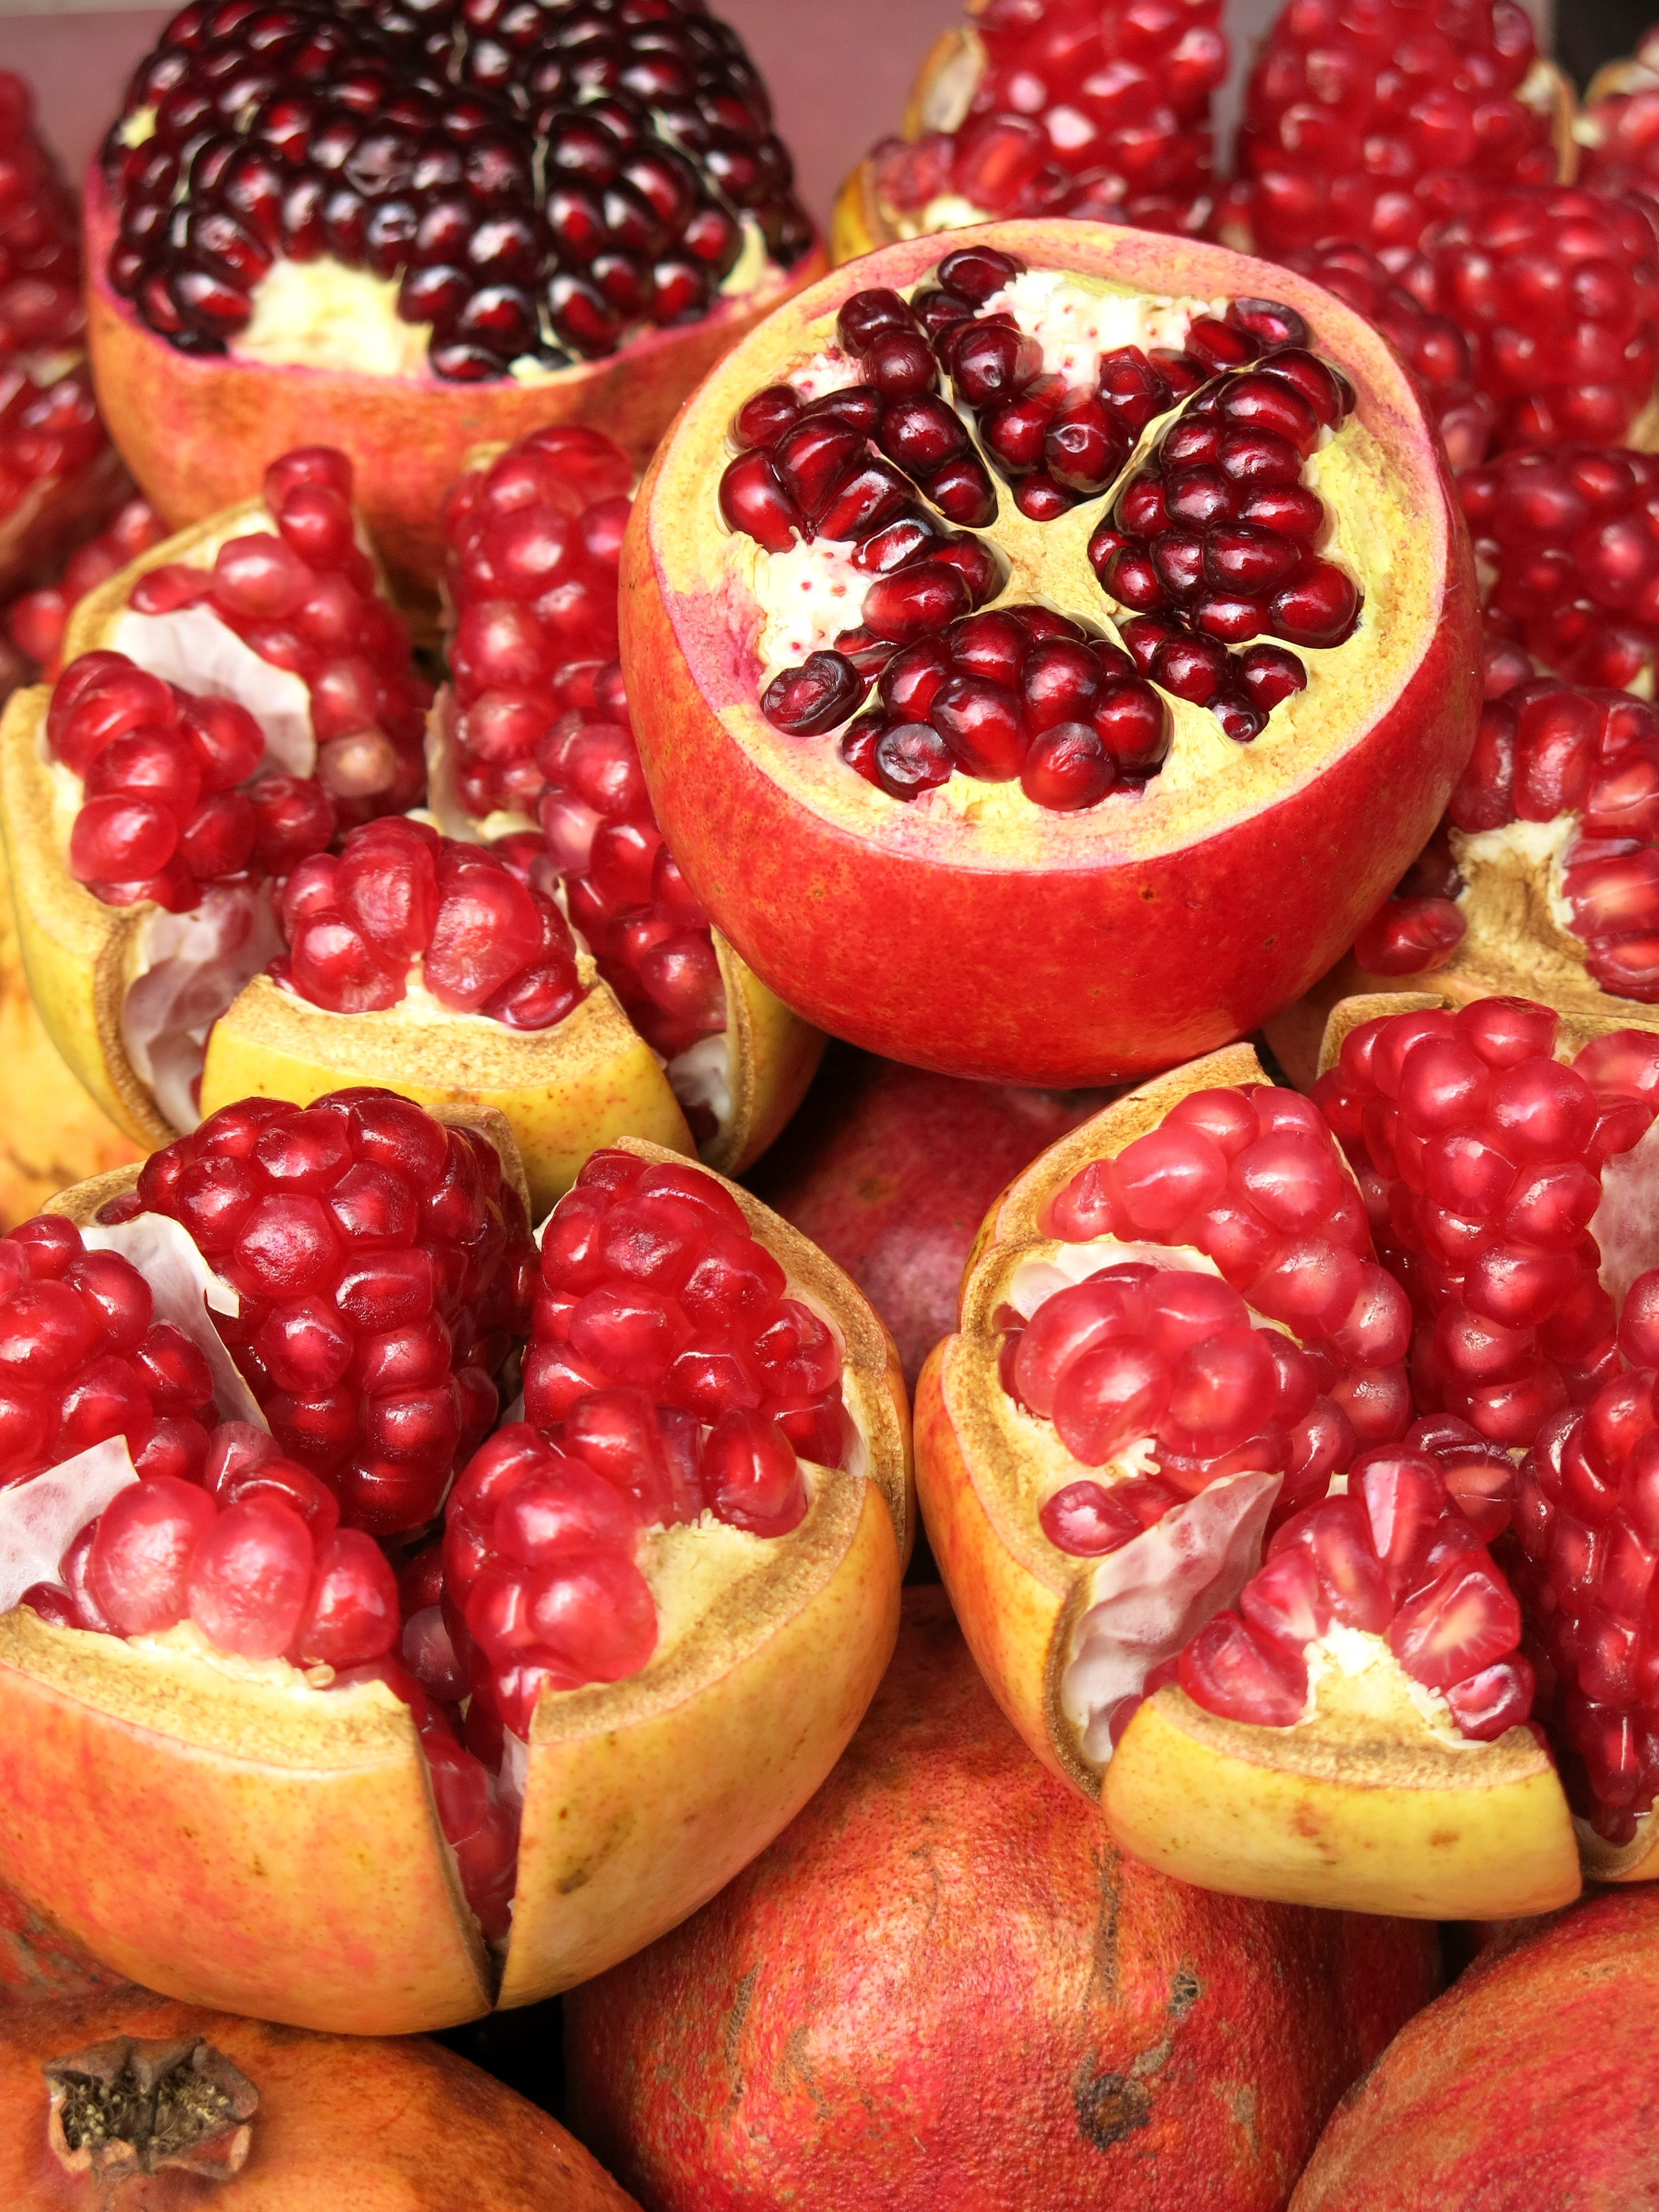 Pomegranates are used to make fresh juices